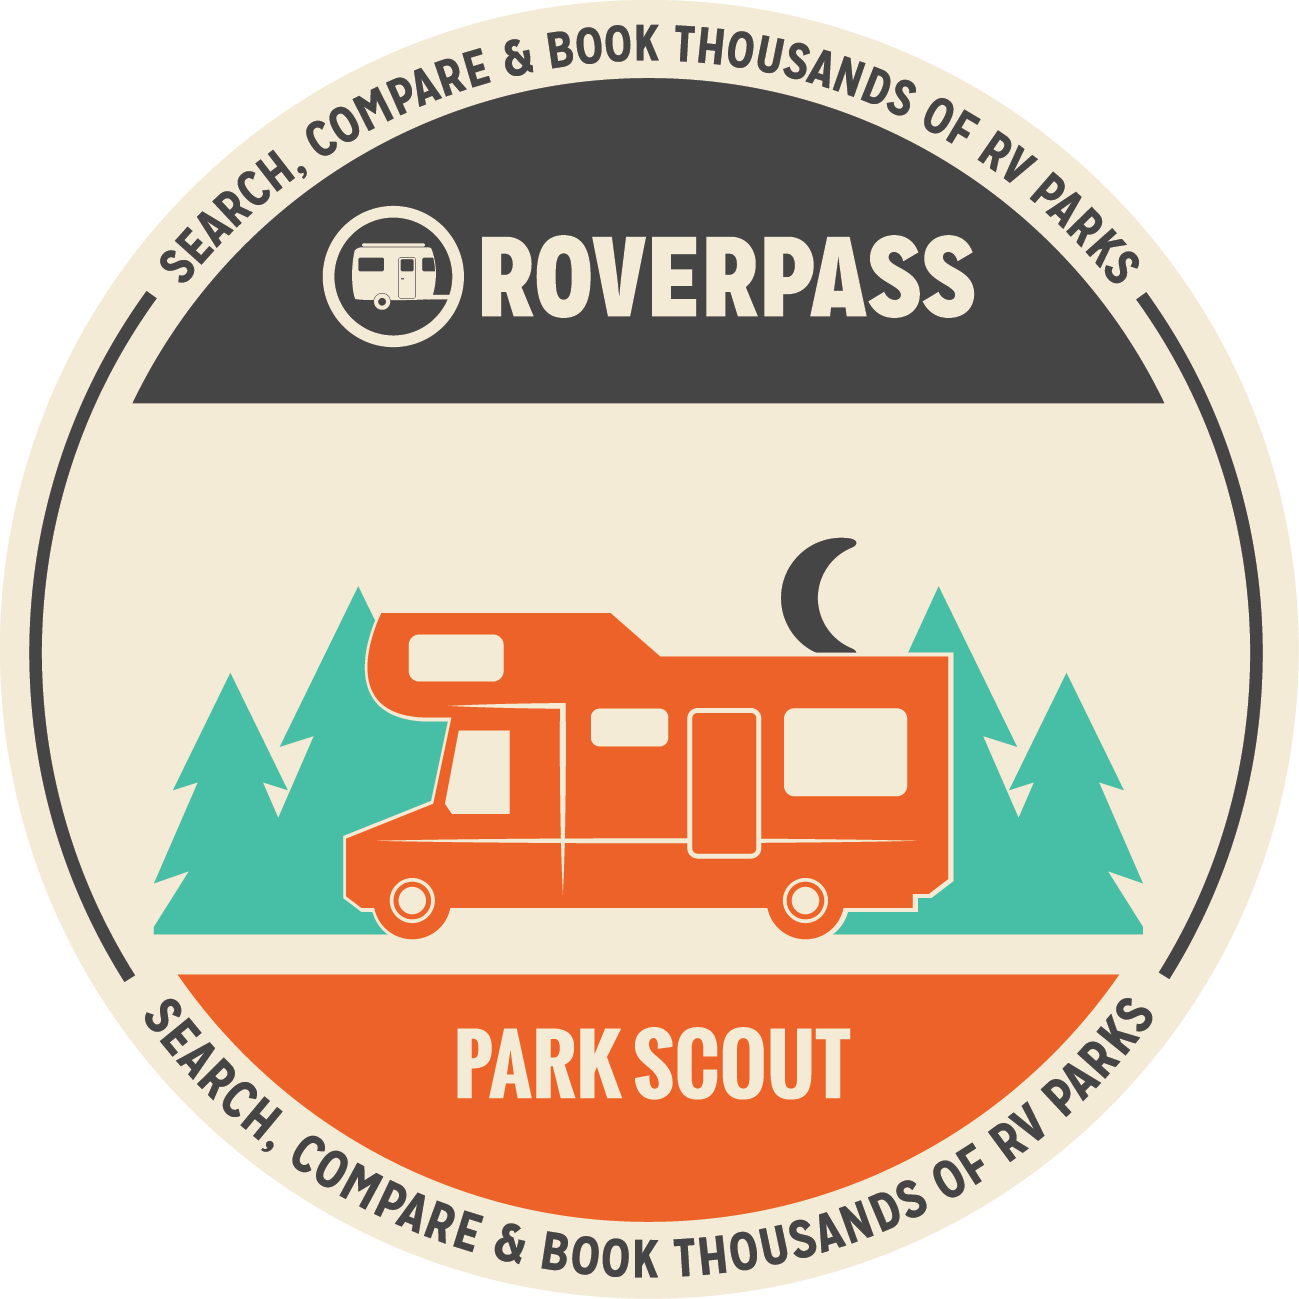 A New Adventure - RoverPass